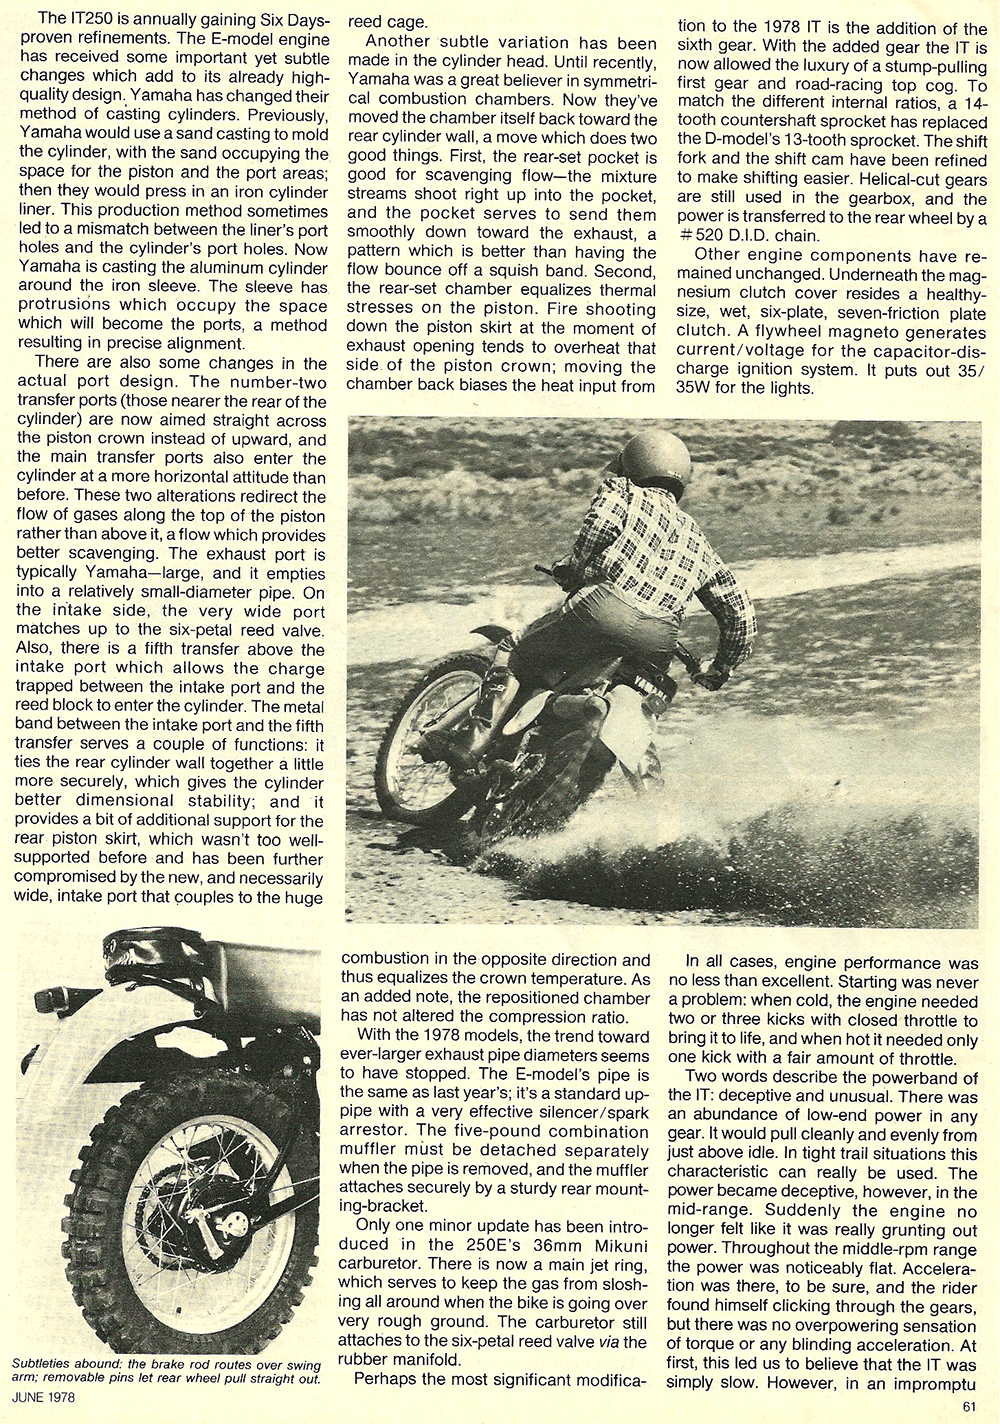 1978 Yamaha IT250 road test 03.jpg